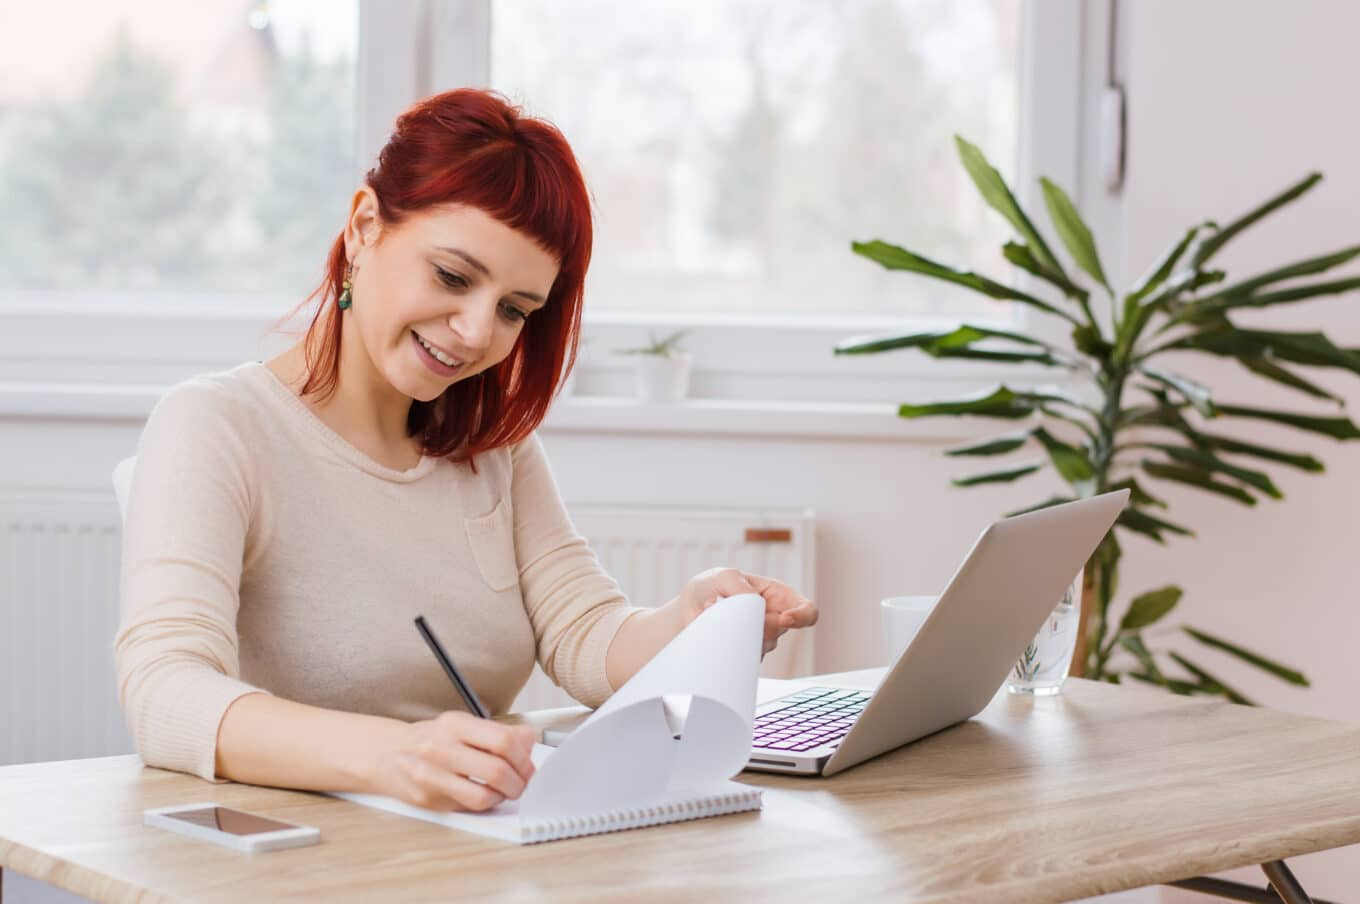 Red,Haired,Girl,Writing,Something,On,A,Piece,Of,Paper